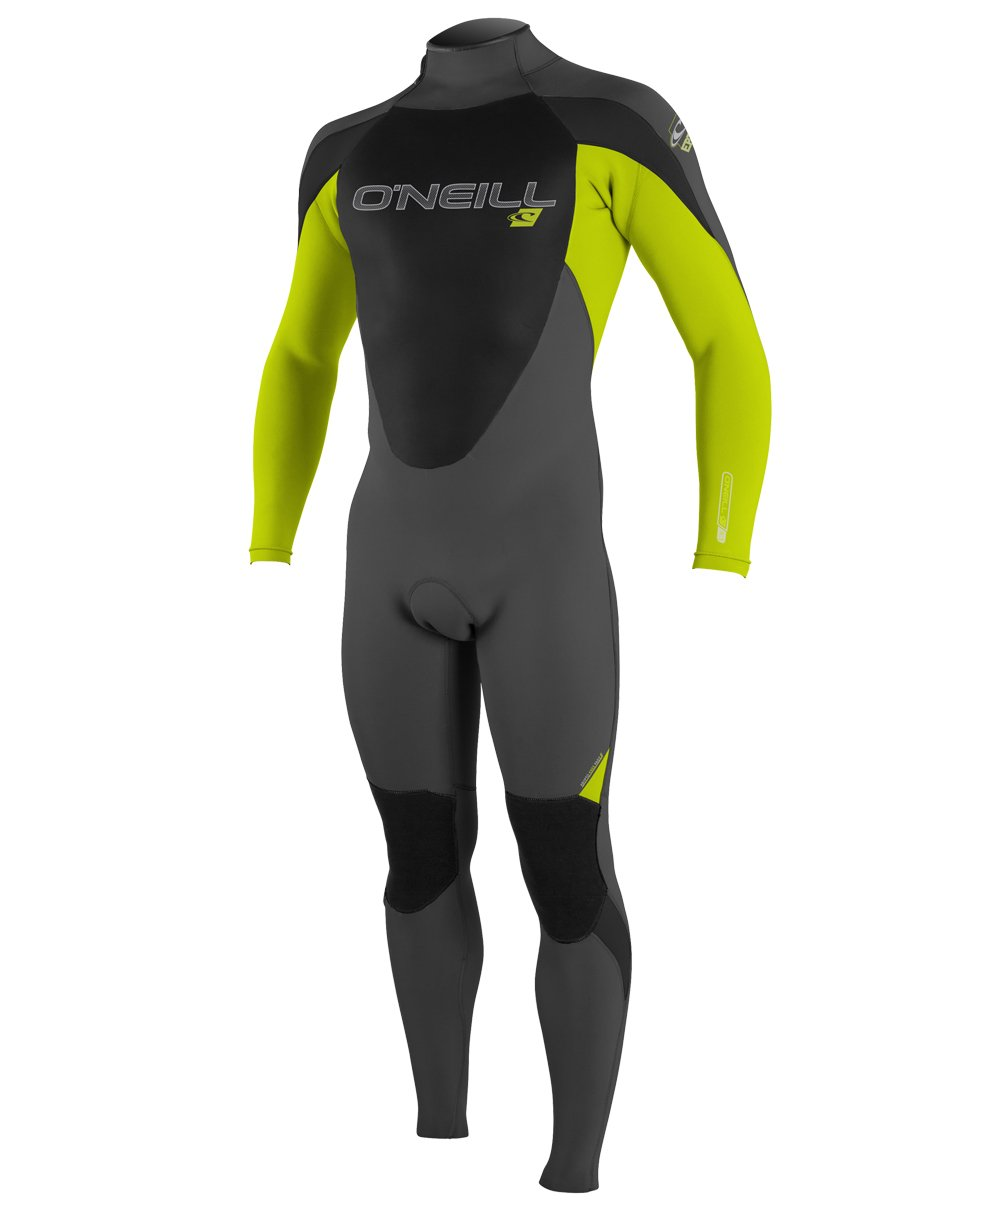 O'Neill Youth Epic 3/2mm Back Zip Full Wetsuit, Graph/Lime/Black, 4